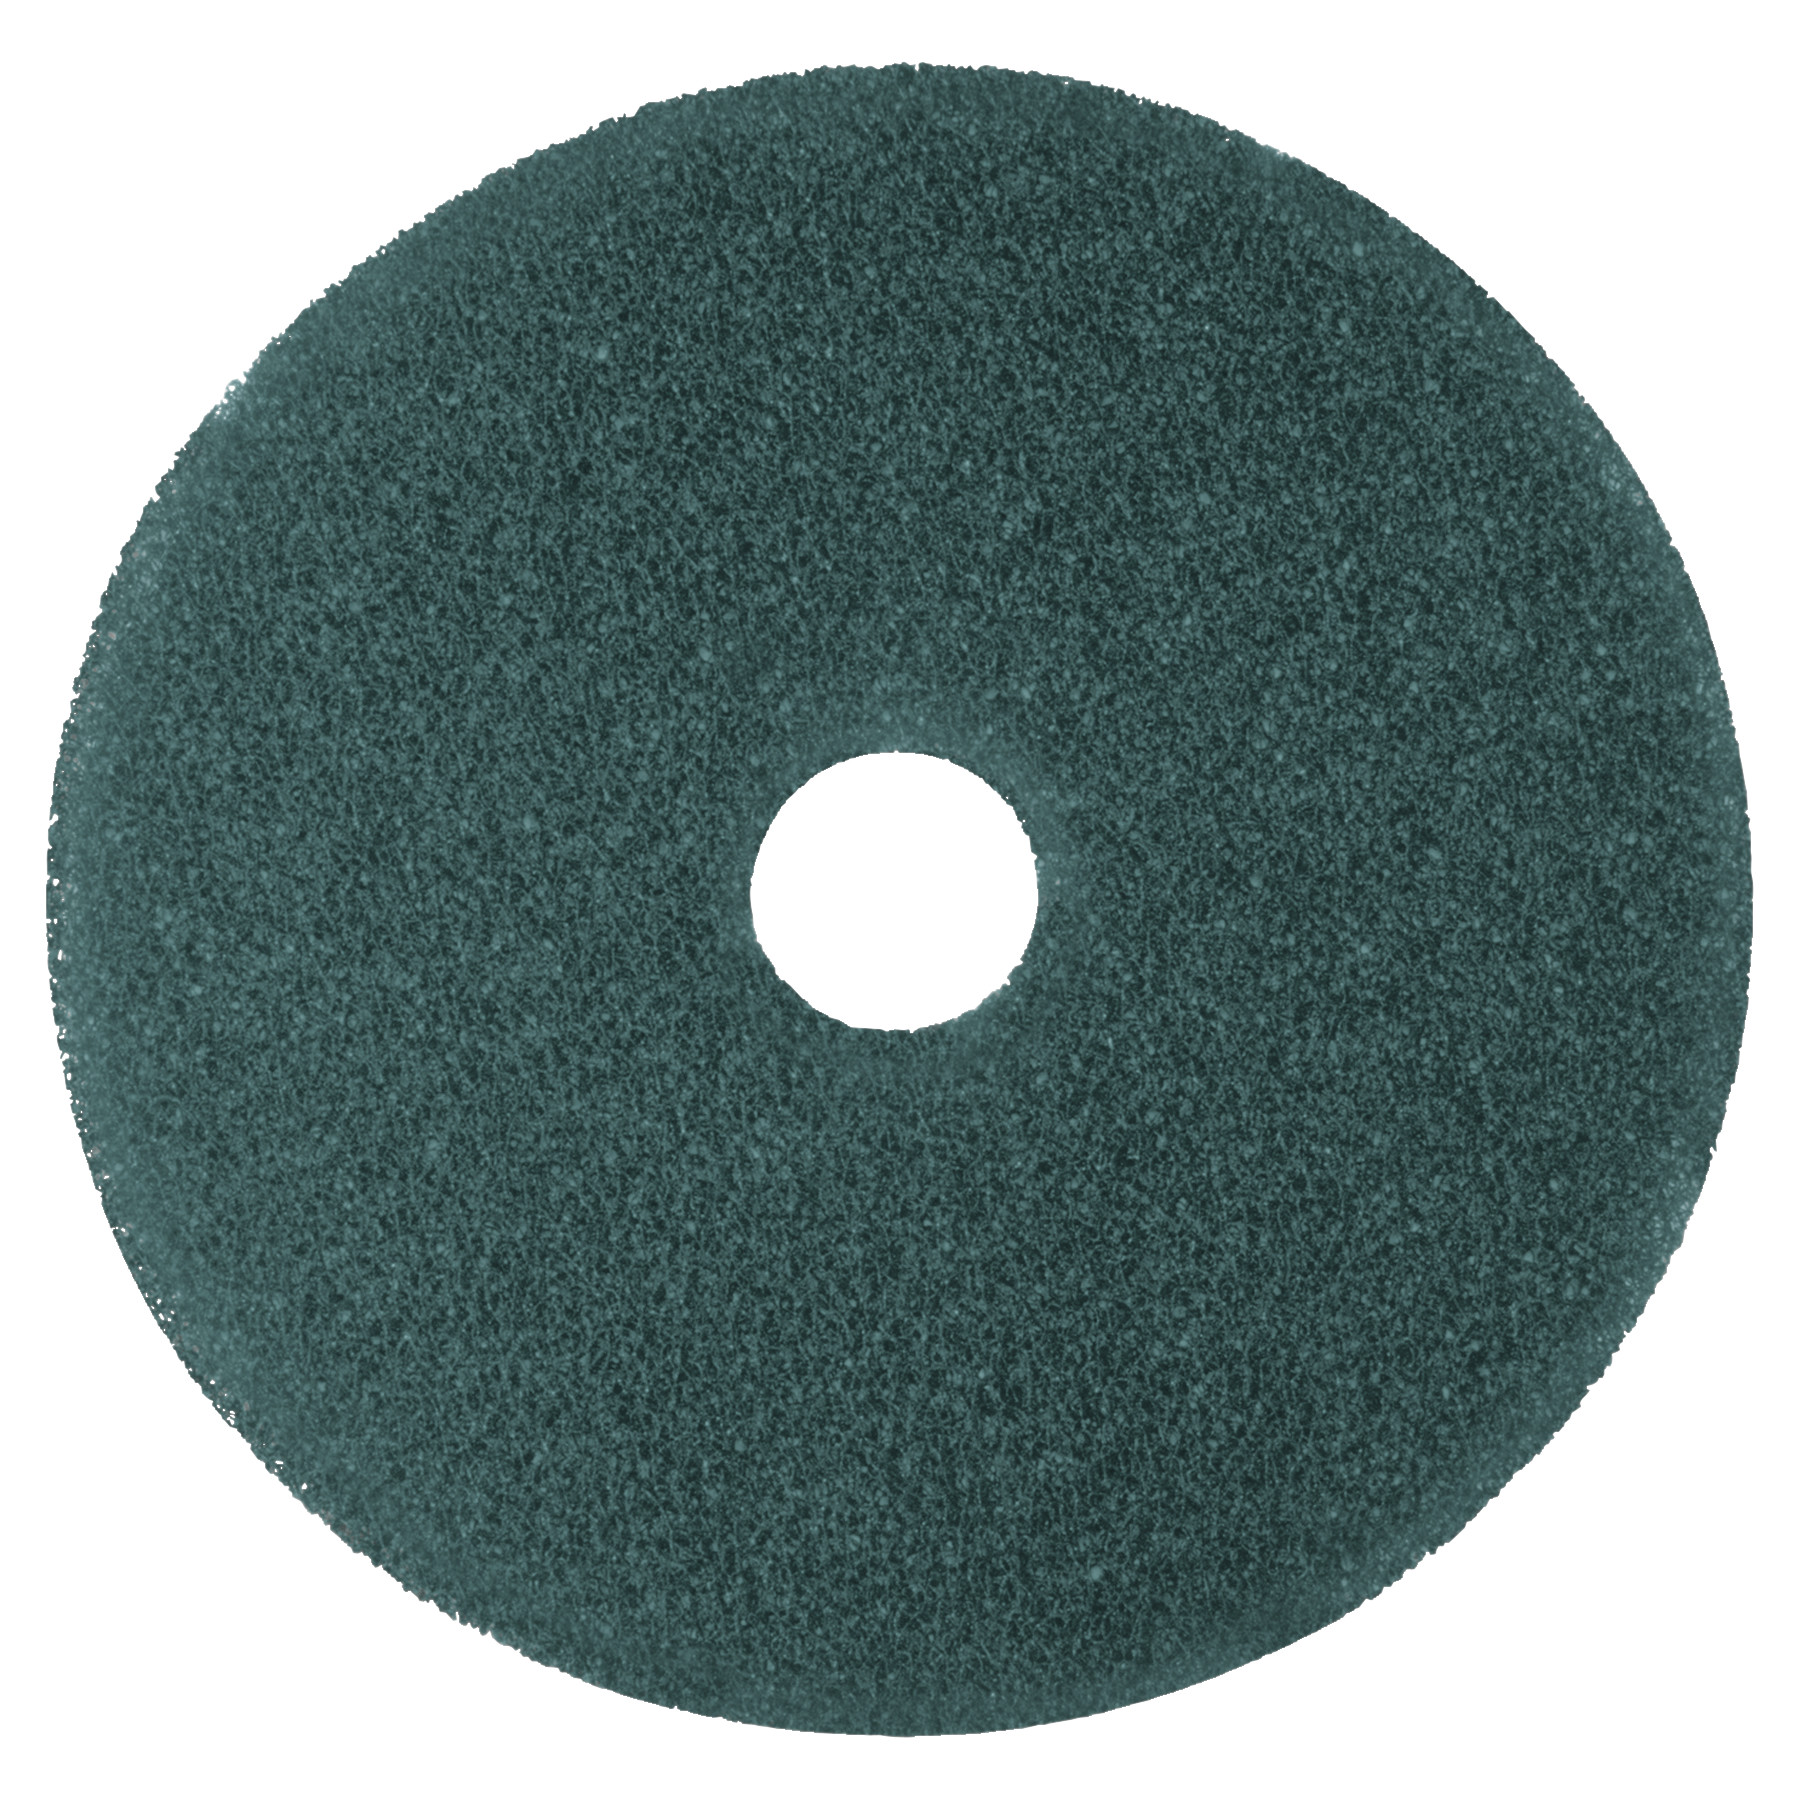 3M 15-Inch Low-Speed High Productivity Floor Pads 5300, Blue, 5 count